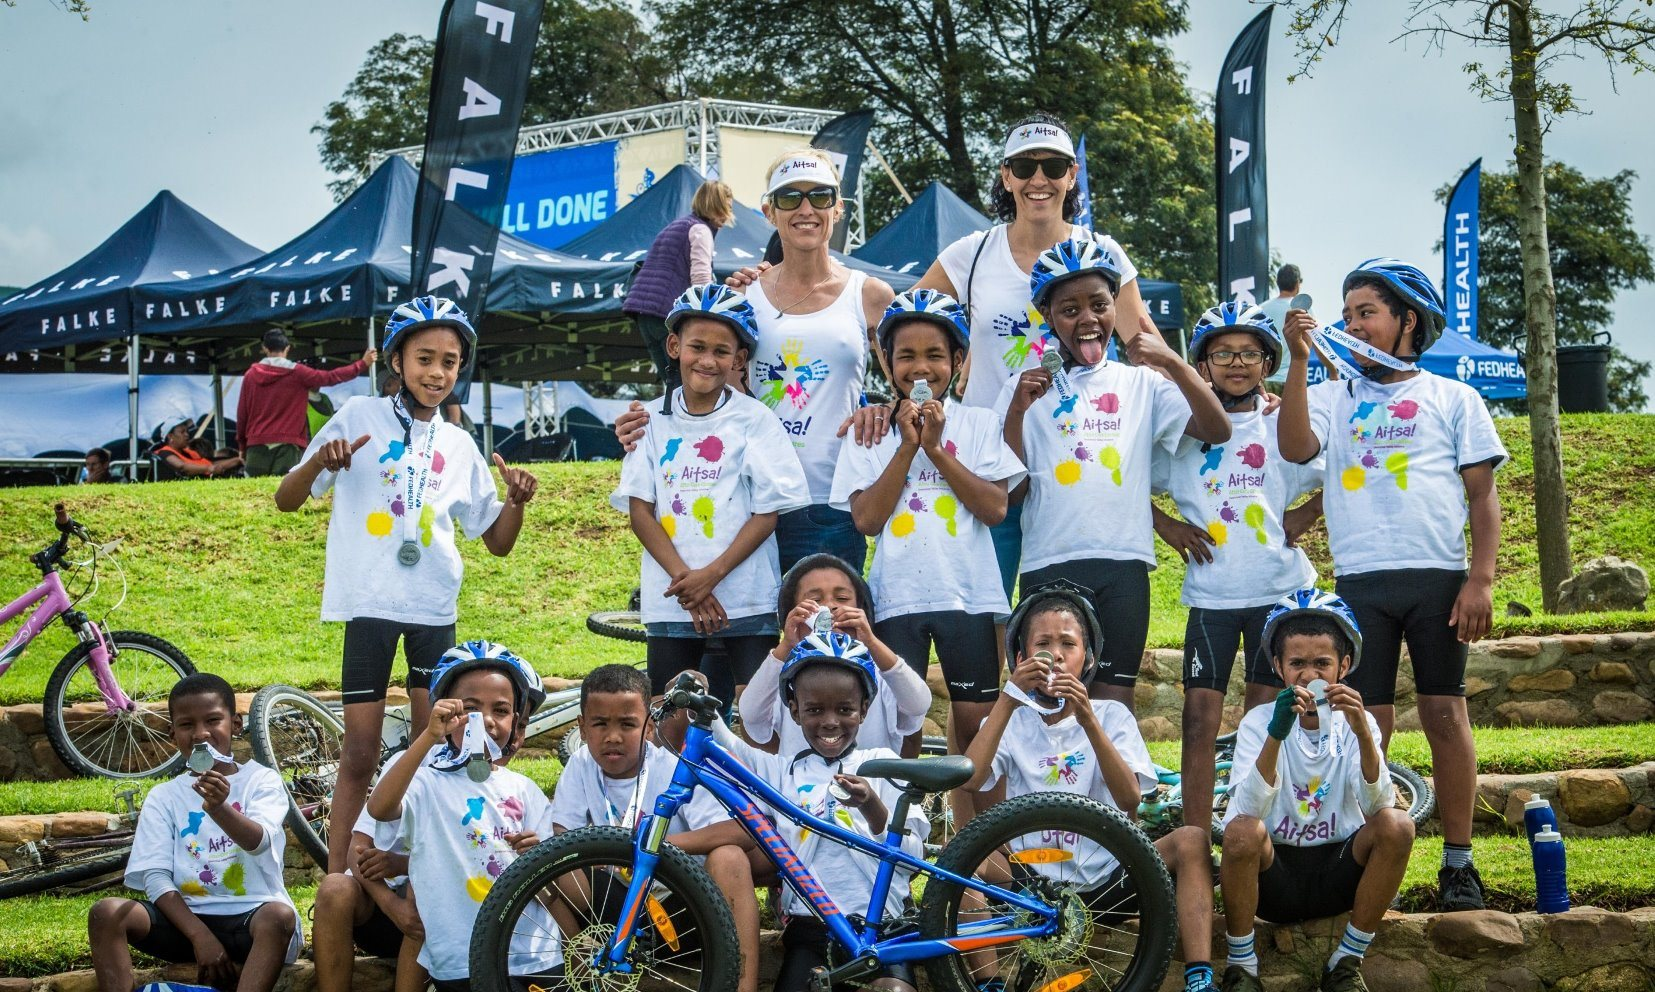 Aitsa! Aftercare Centre mountain bikers excited to take on Fedhealth MTB Challenge